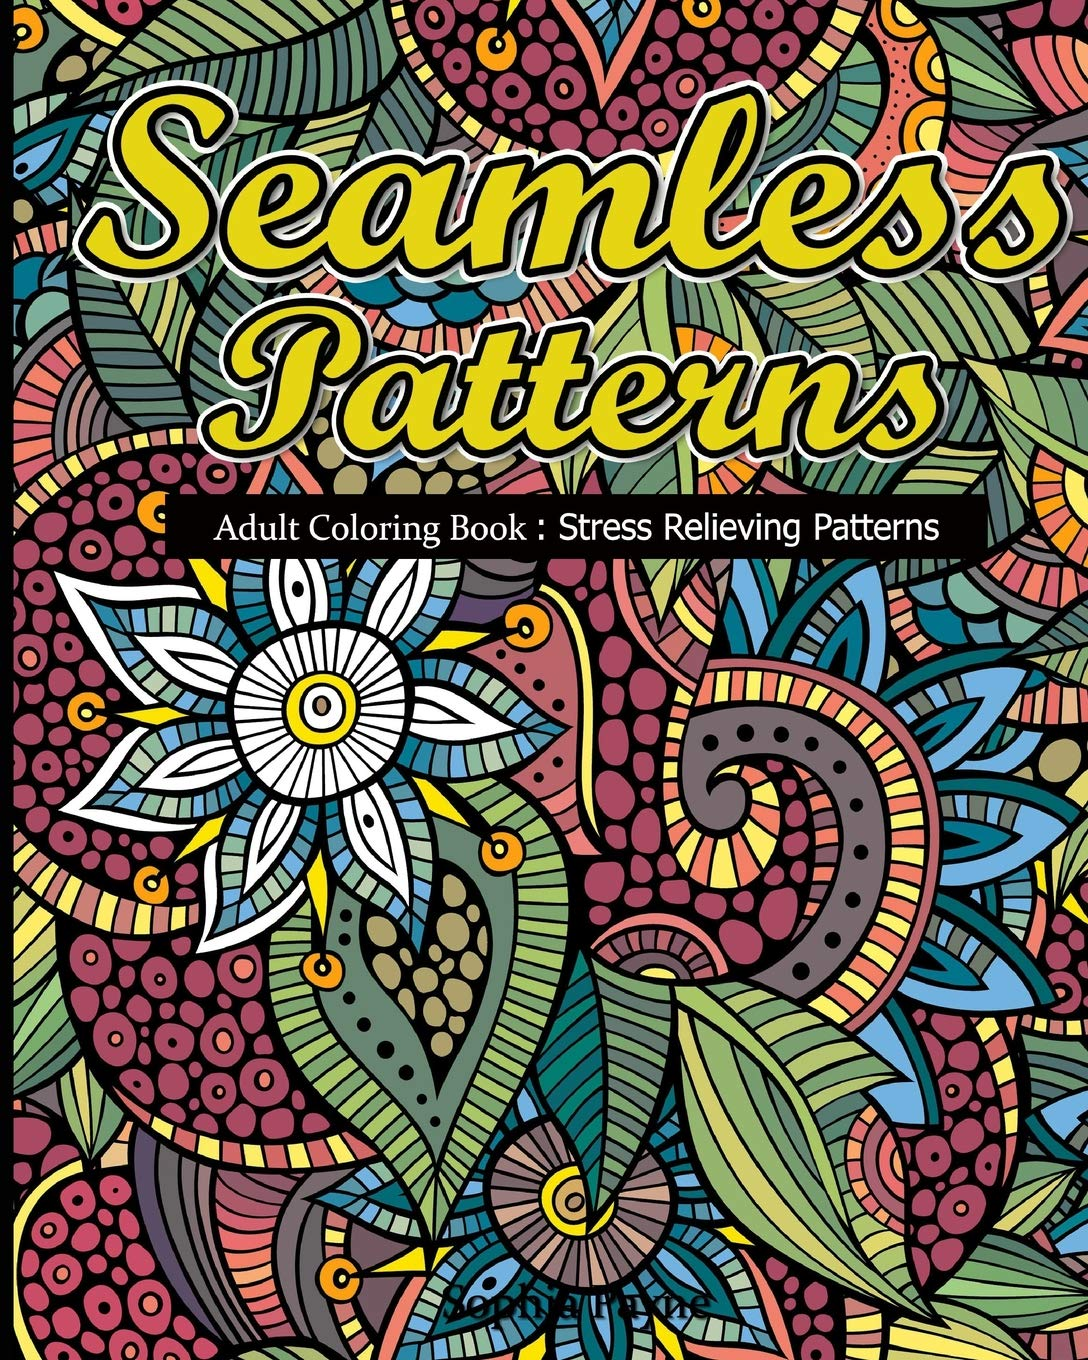 - Amazon.com: Seamless Patterns: Adult Coloring Book : Stress